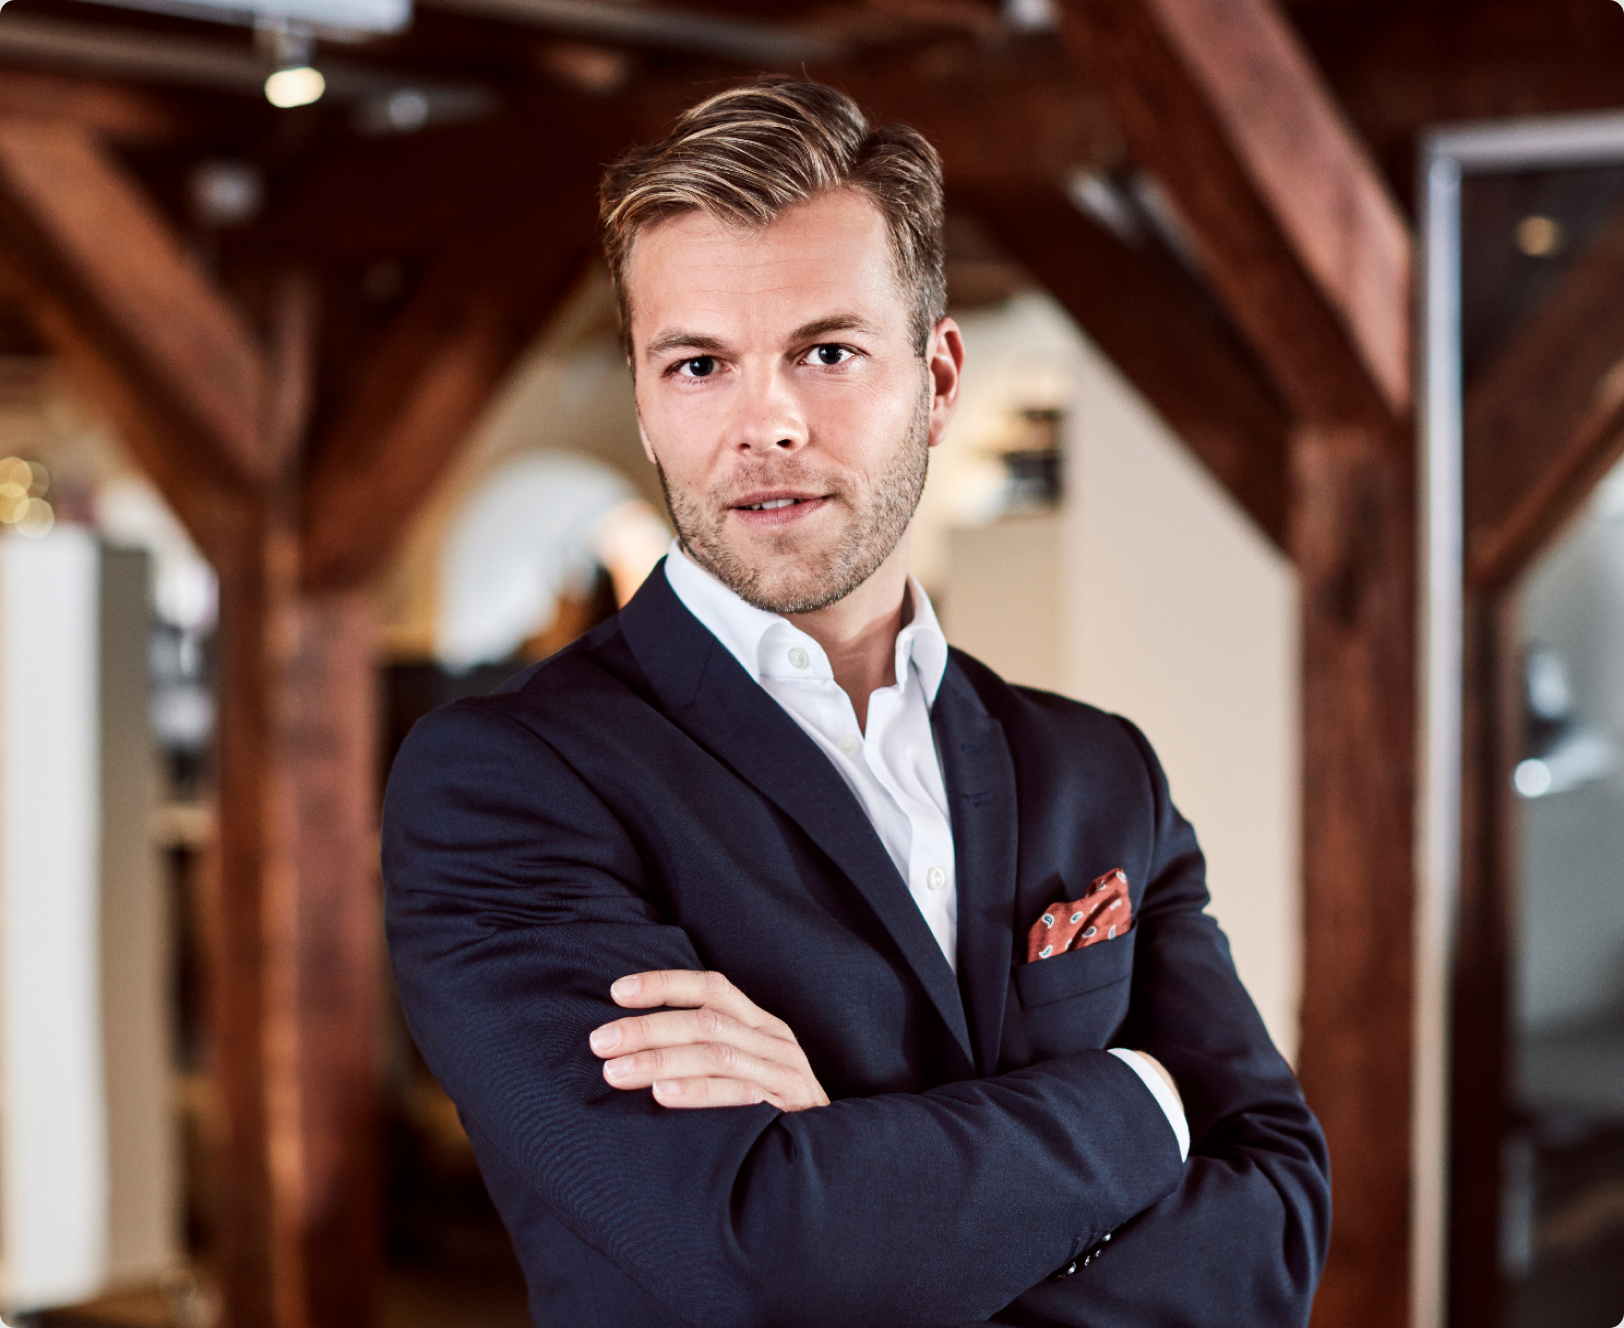 Andreas Dam, CEO & Founder